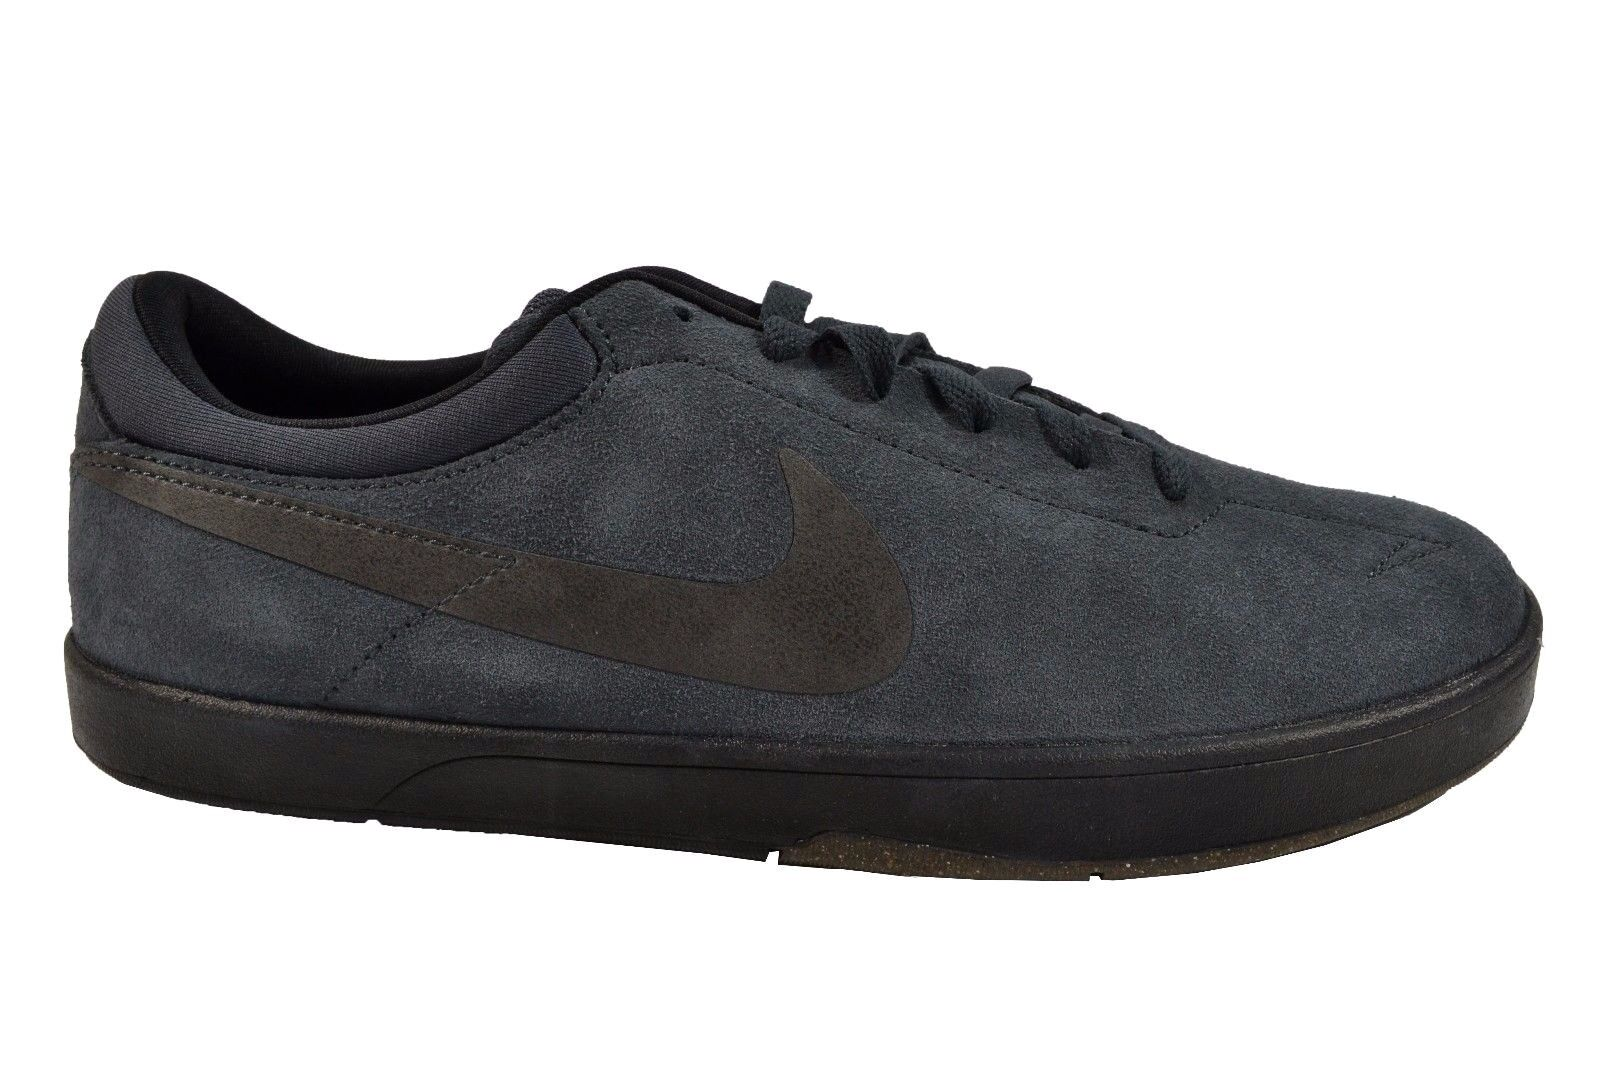 Nike ERIC KOSTON Anthracite noir Buff Gold Skate Discounted (180) homme chaussures